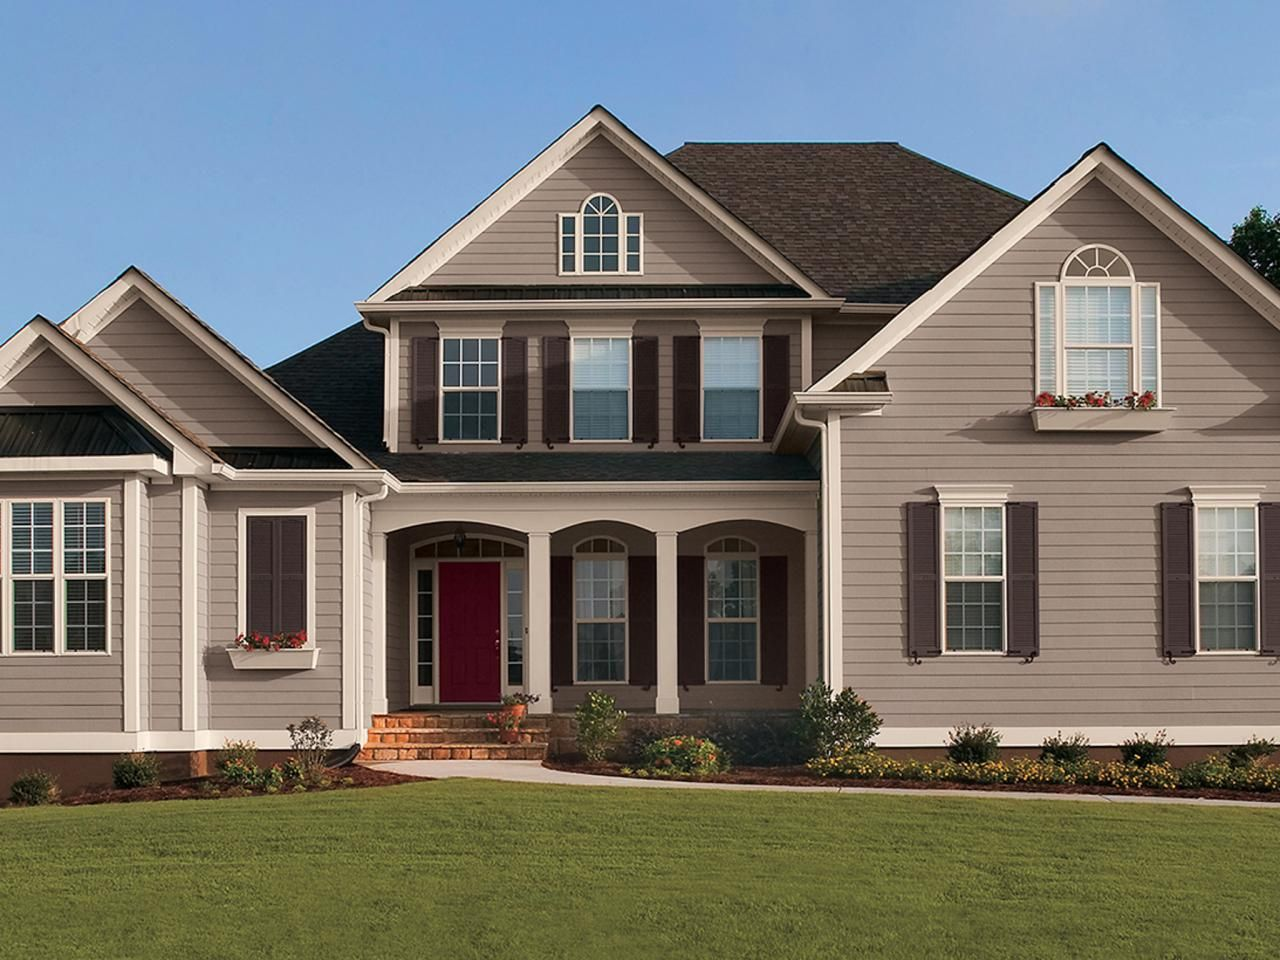 28 inviting home exterior color ideas house paint on exterior house paint colors schemes id=87321